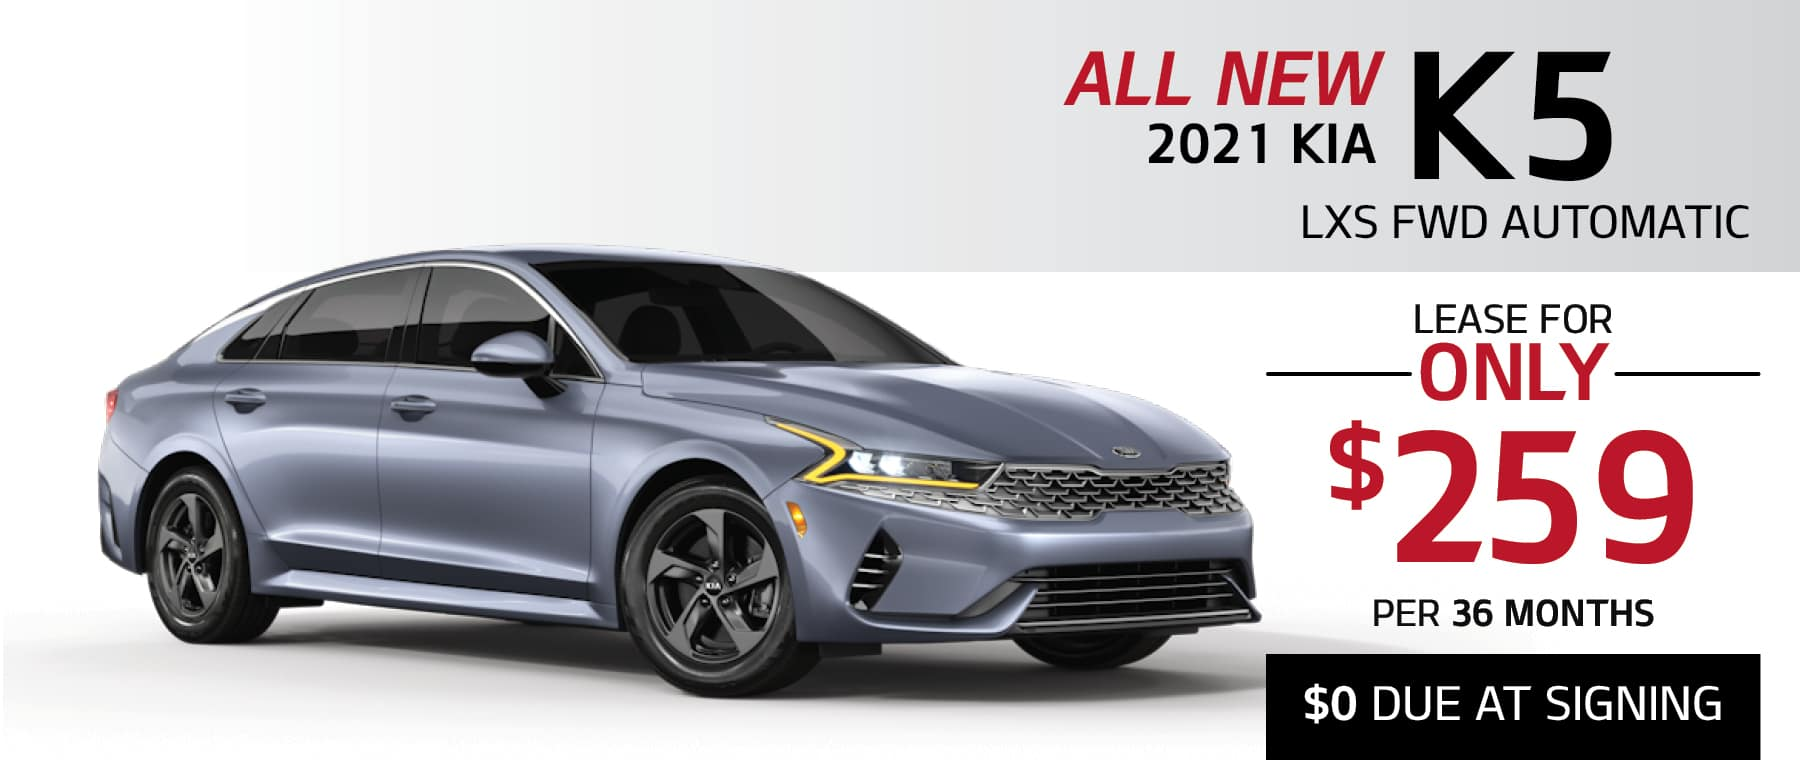 2021 Kia K5 lease for $259 per month with $0 due at signing at Smail Kia in Greensburg PA 15601